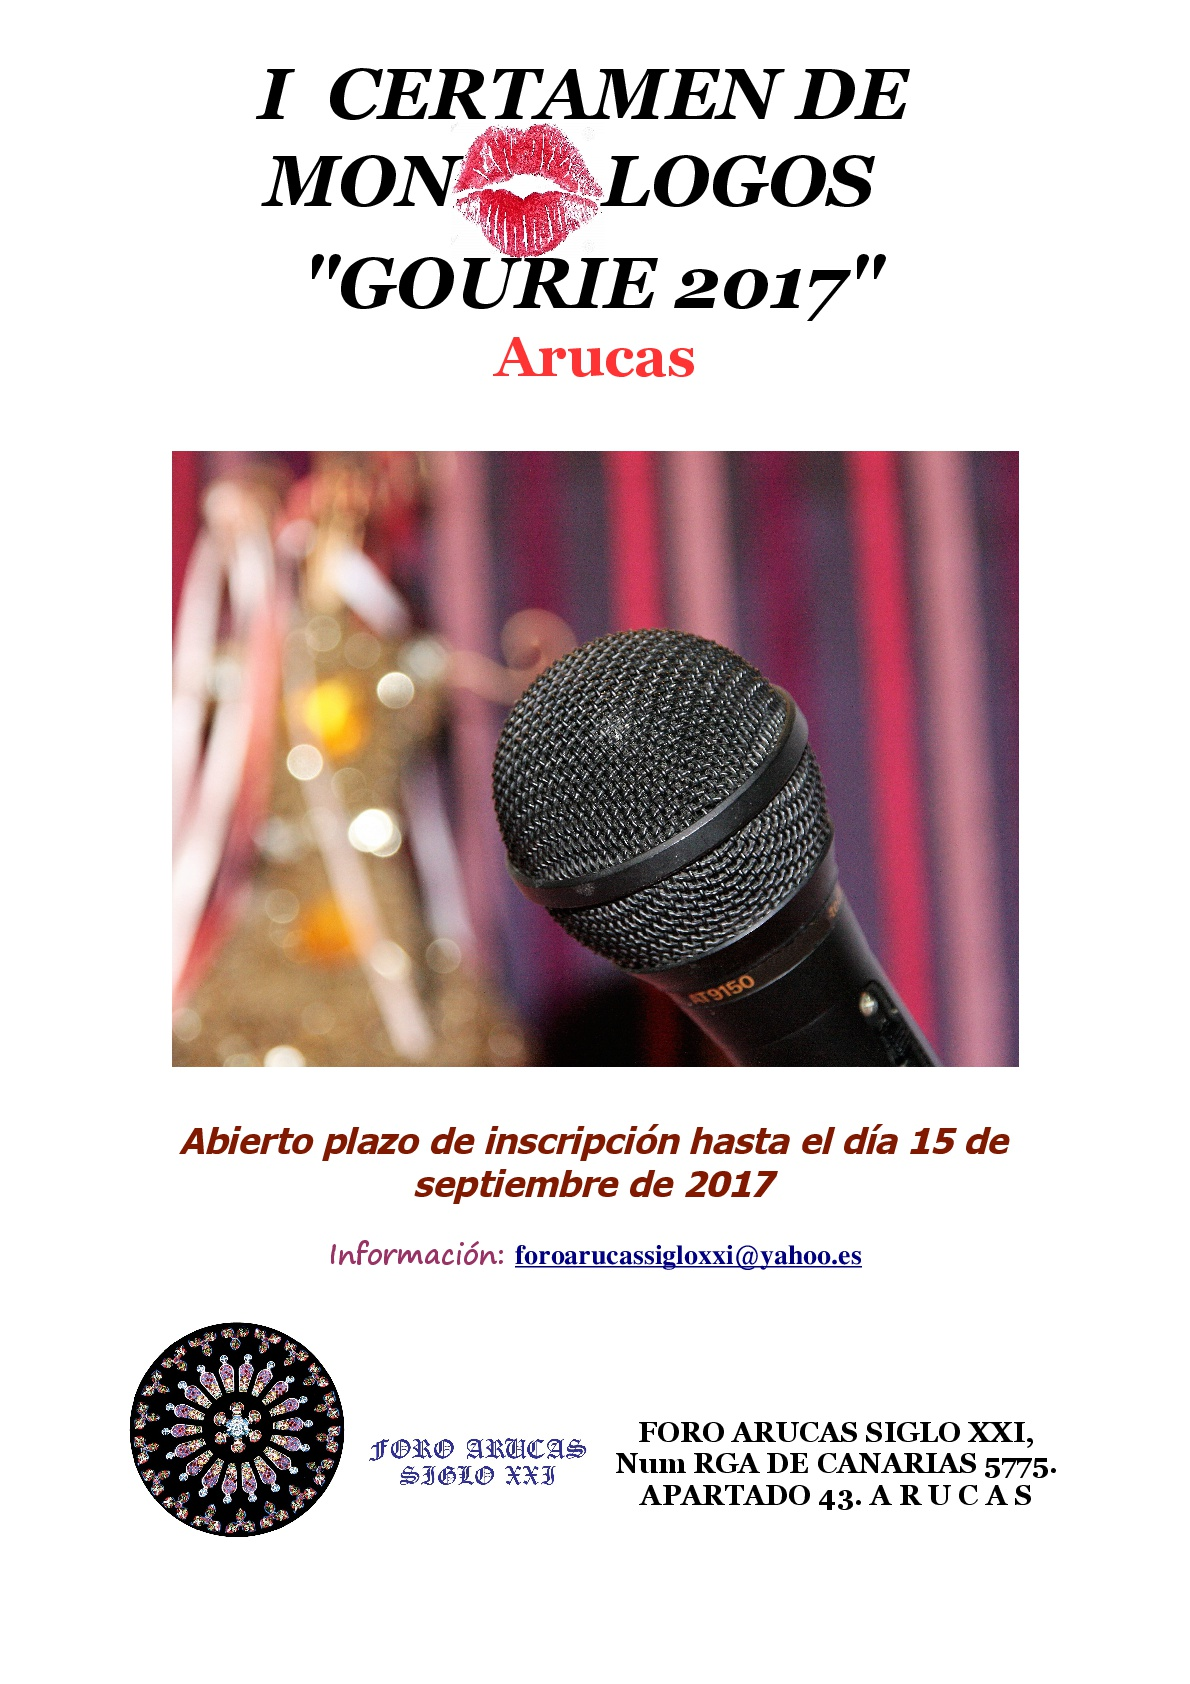 Gourie/2017